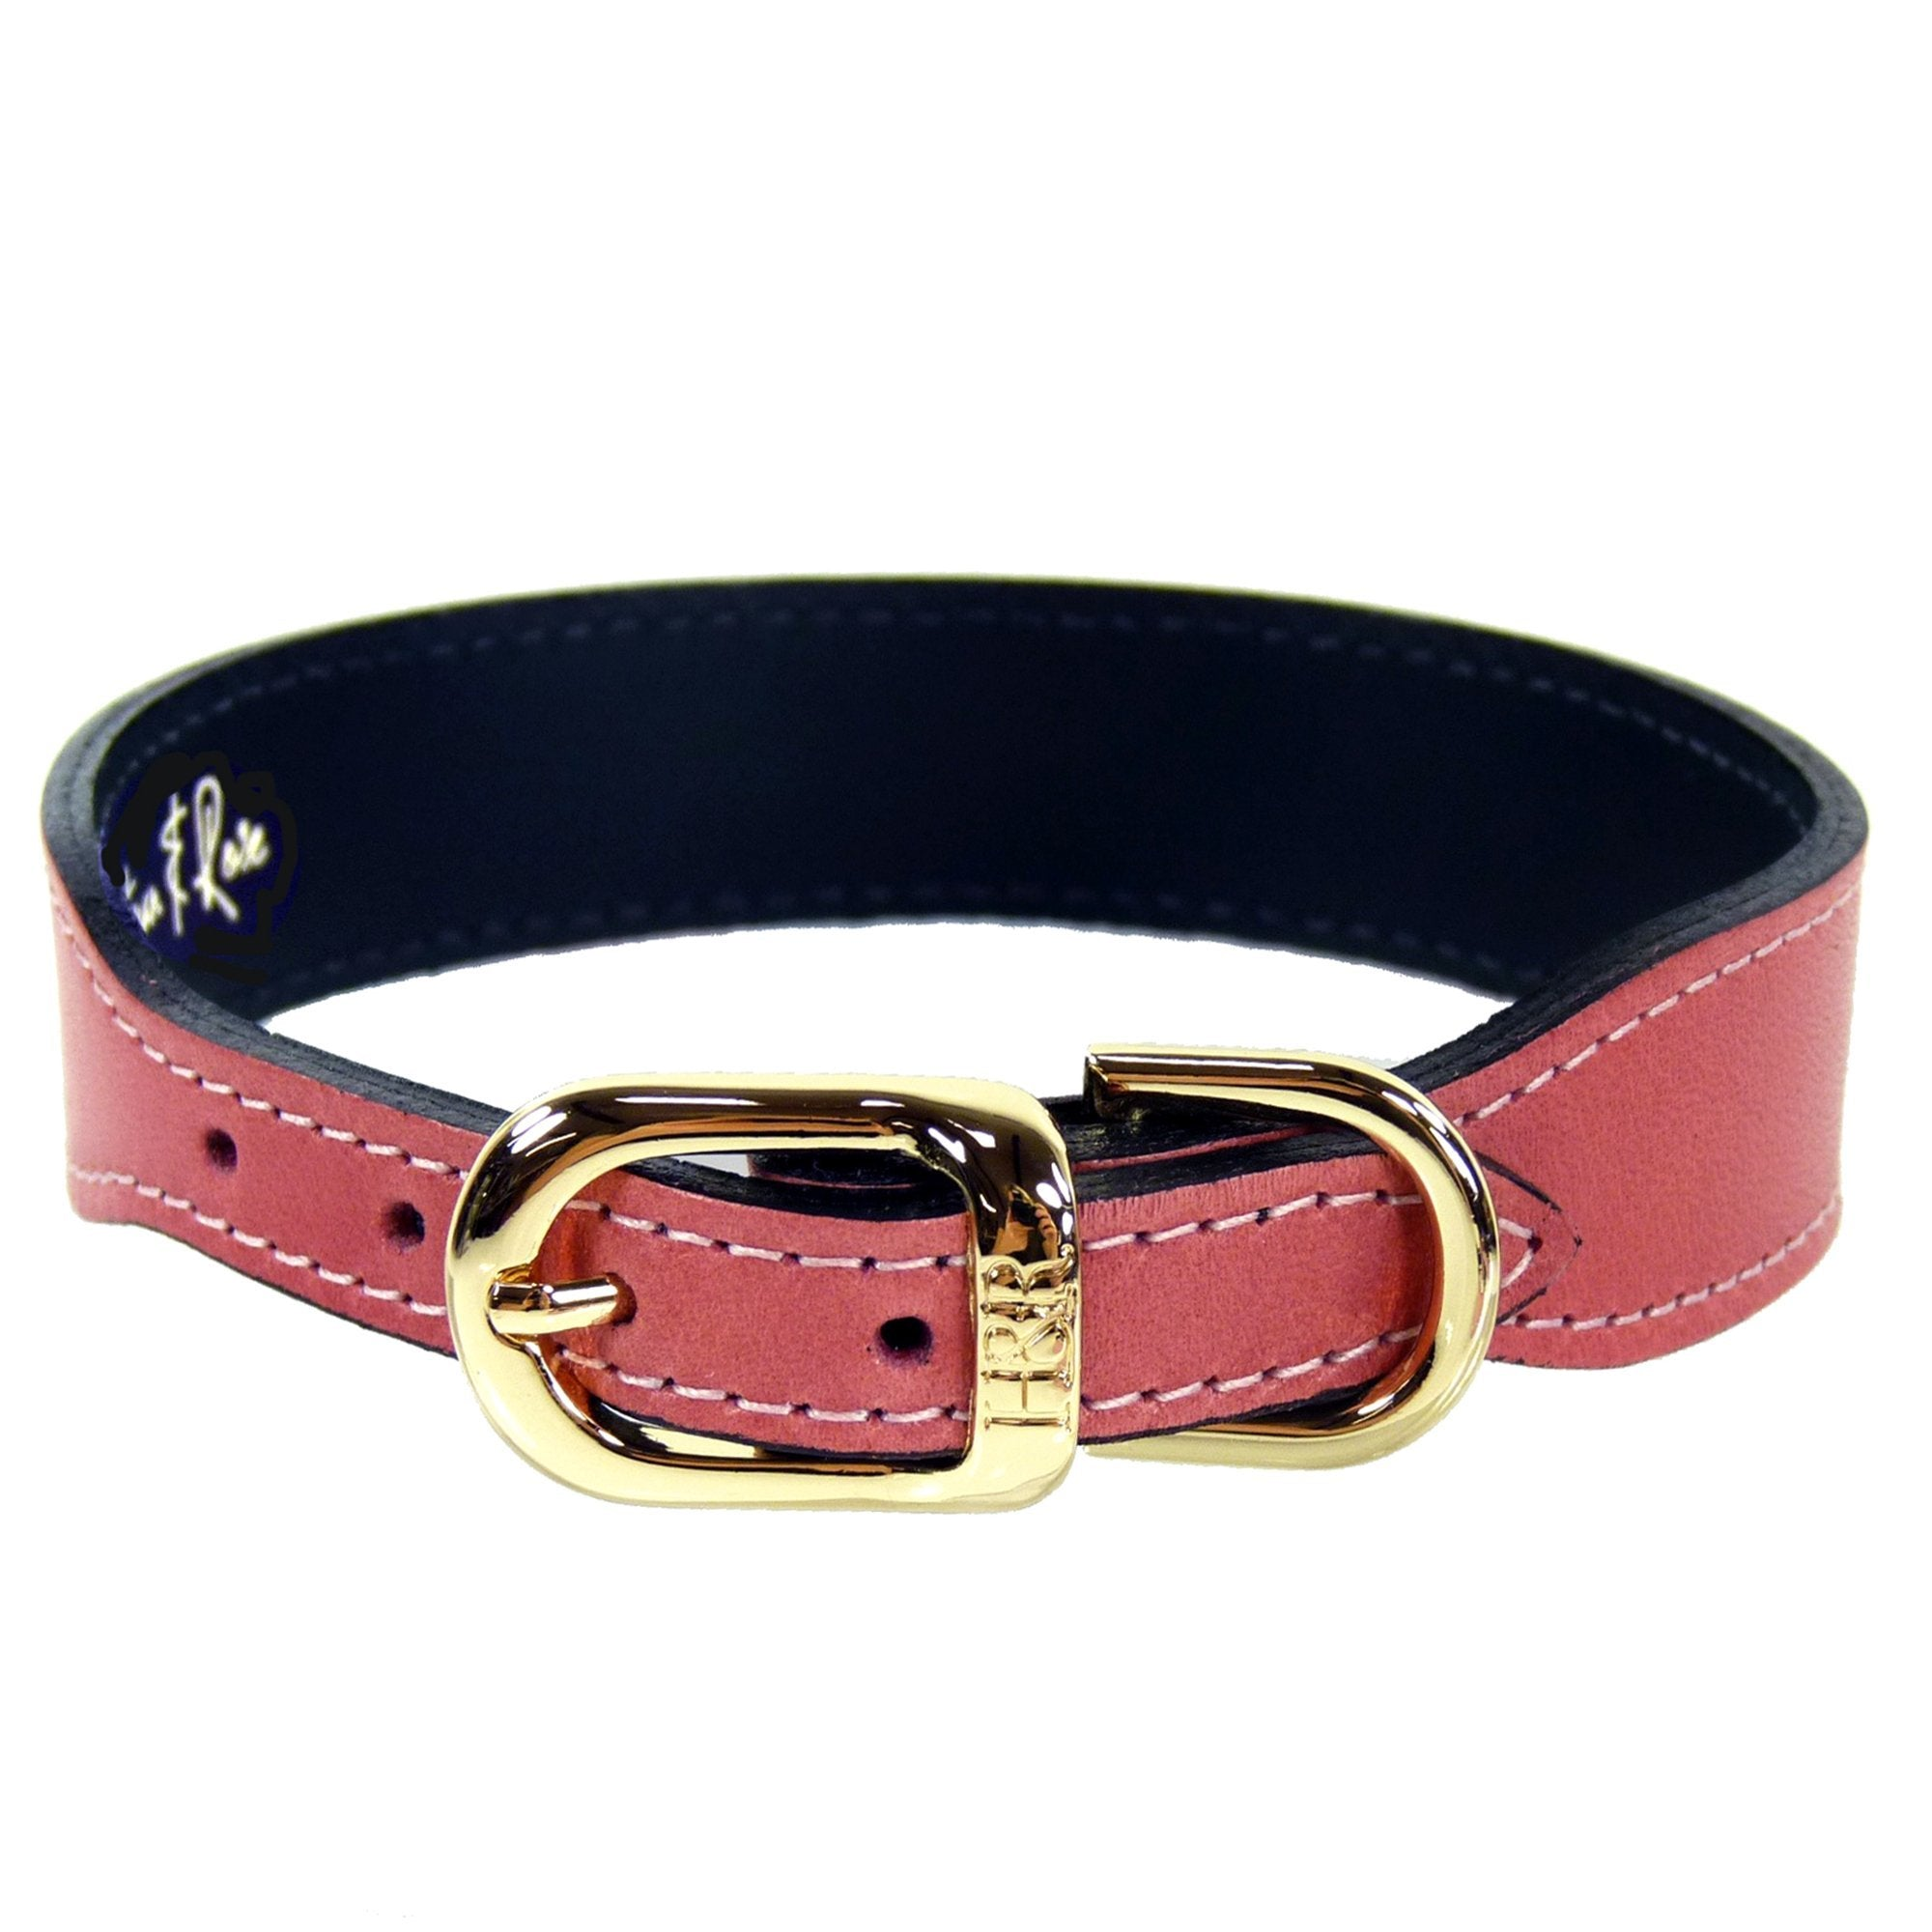 Petal Pink Collar  - Gold Hardware